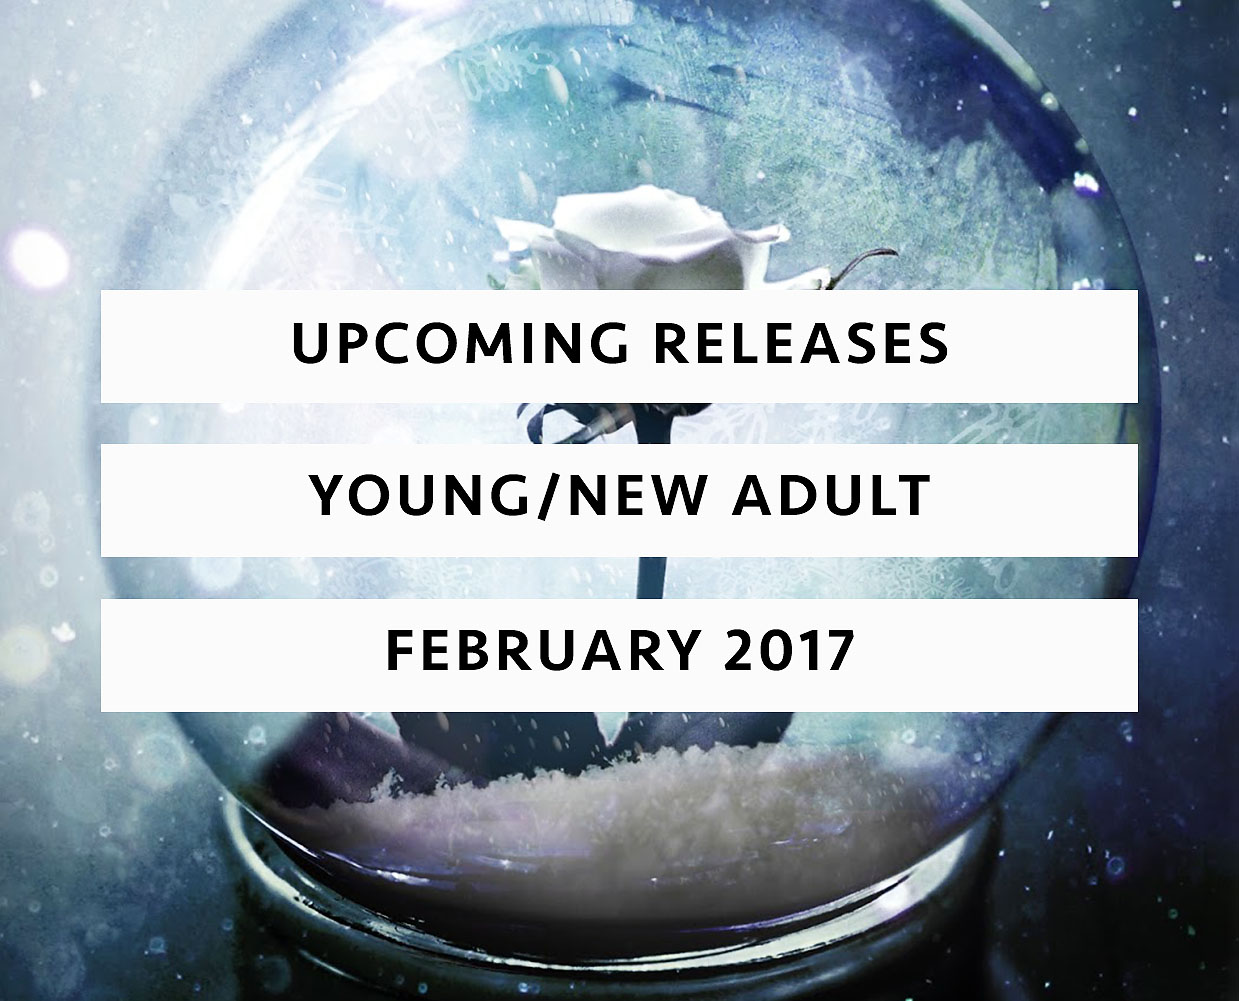 Upcoming releases february 2017